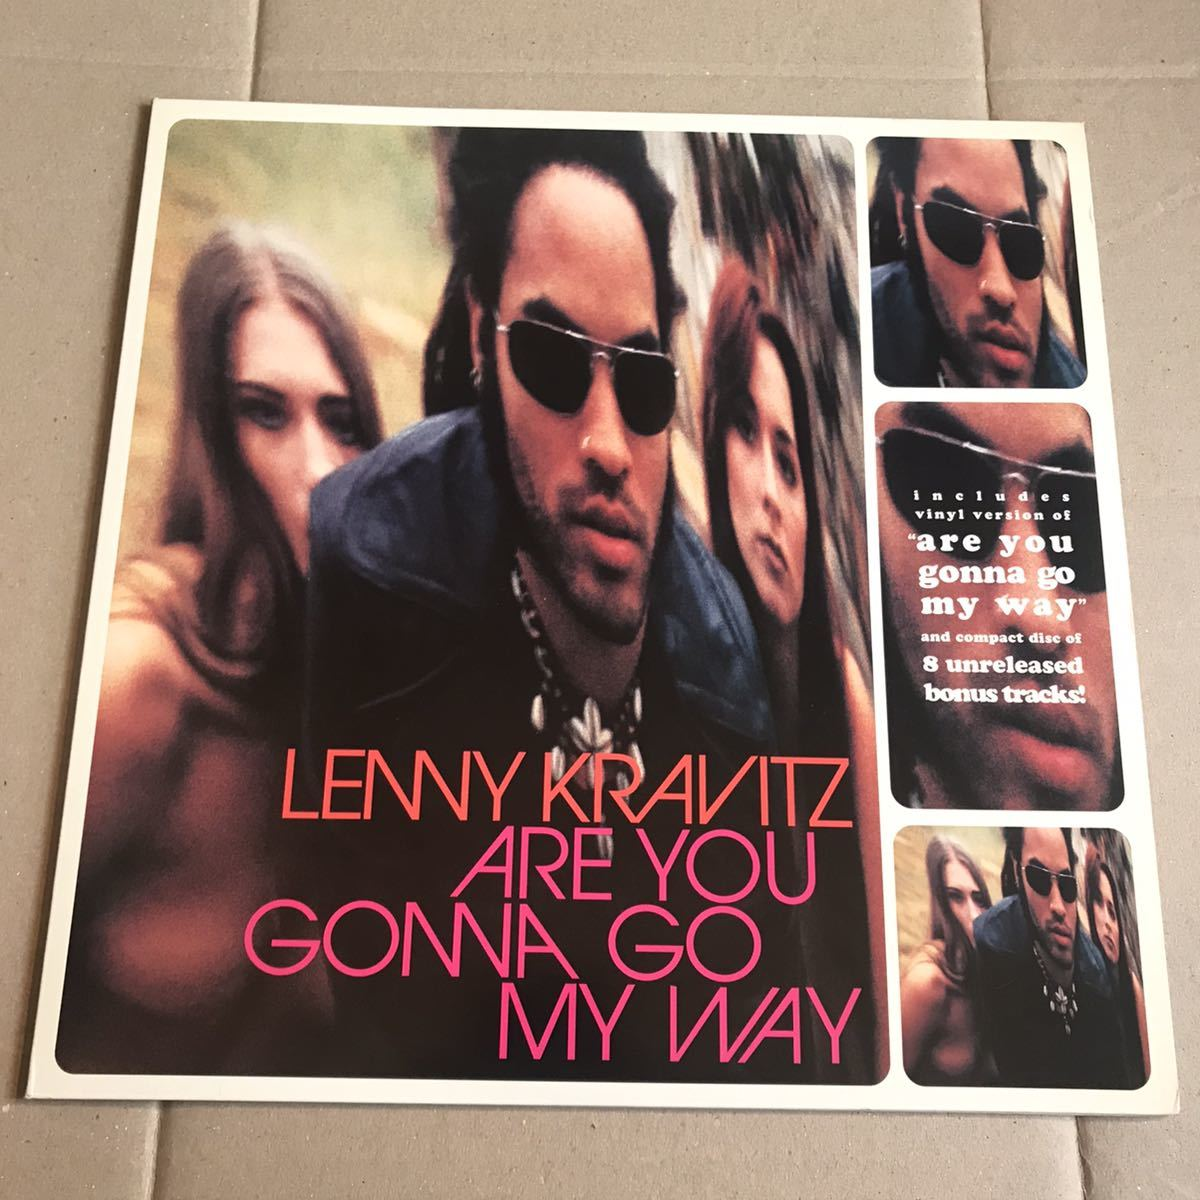 LENNY KRAVITZ ARE YOU GONNA GO MY WAY 限定盤 CLEAR LP+CD レニー・クラヴィッツ_画像1